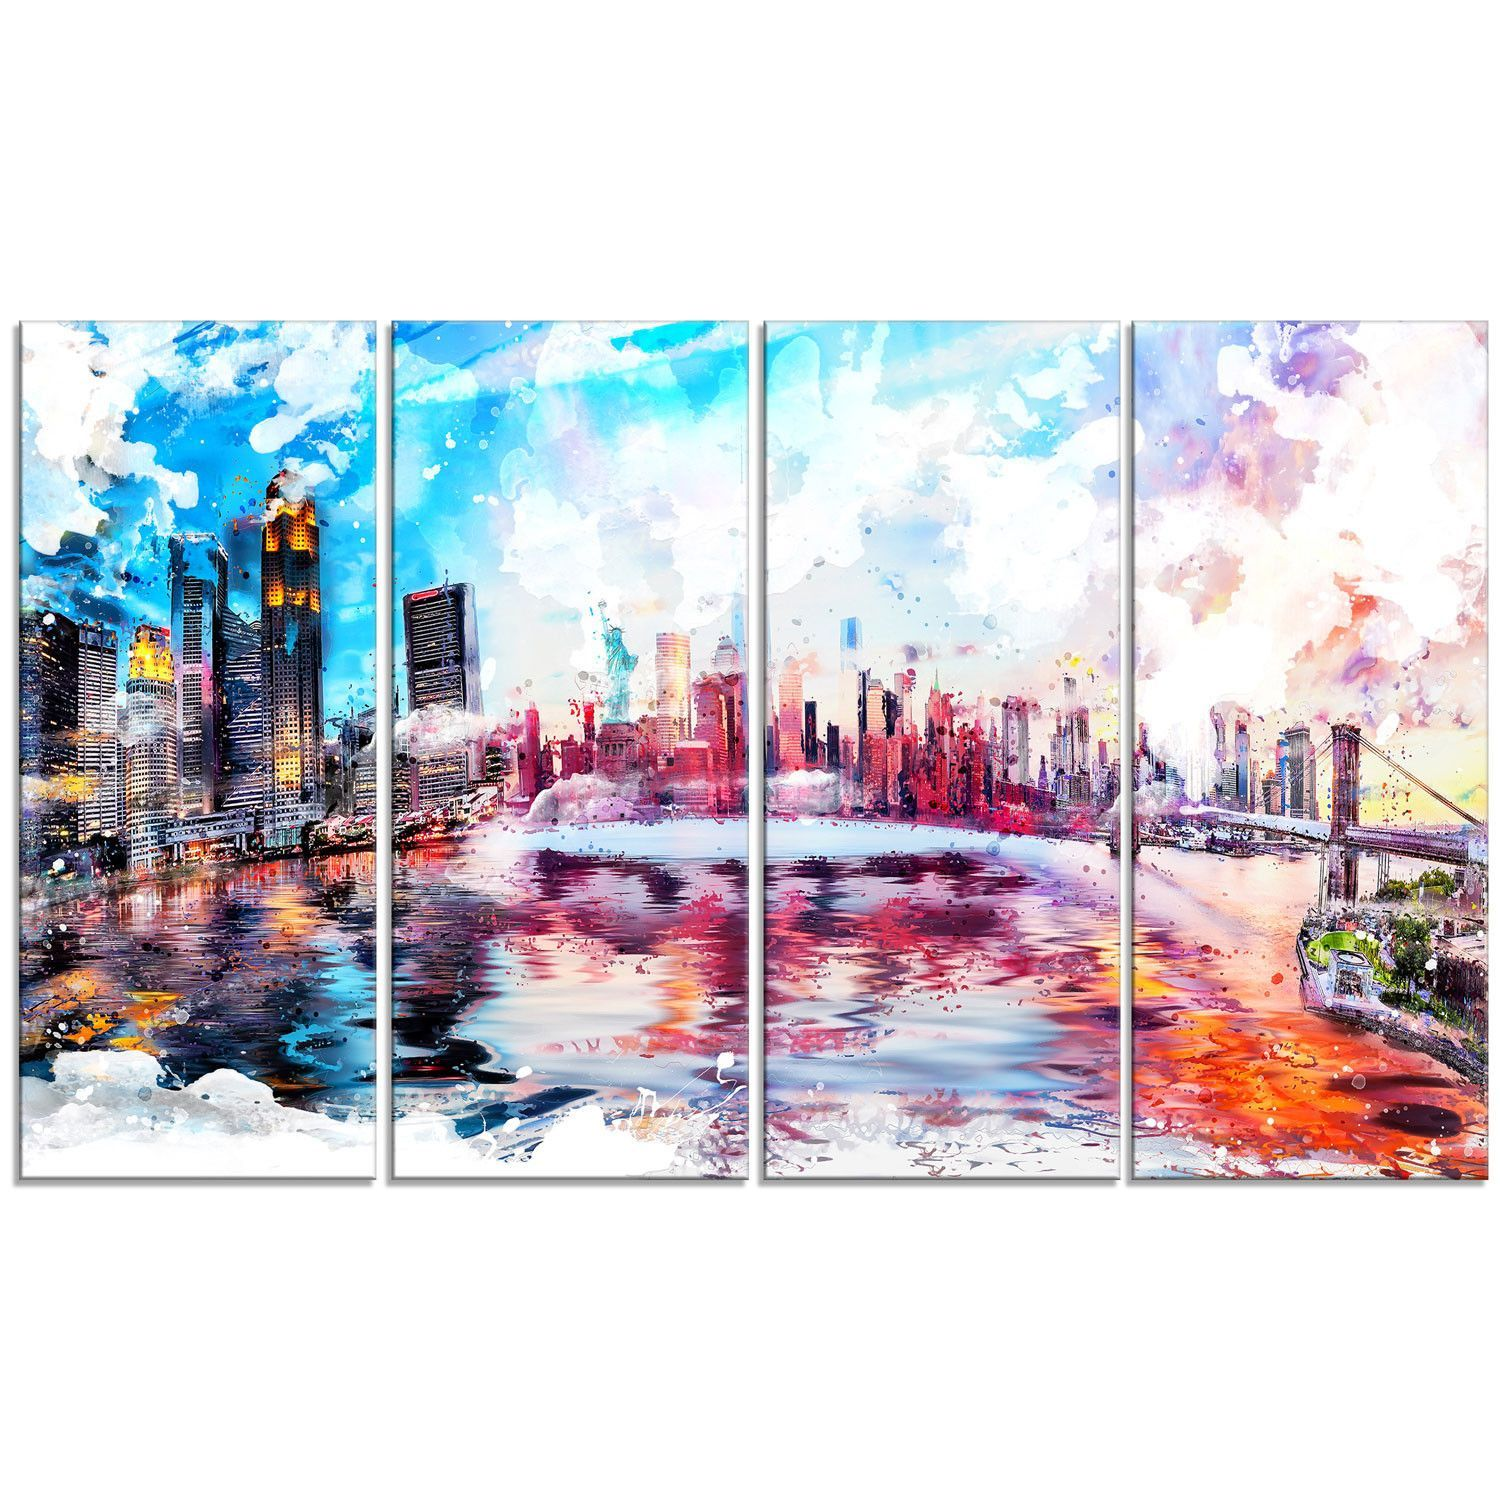 This Exquisite Lively NYC Cityscape Canvas Wall Art Print